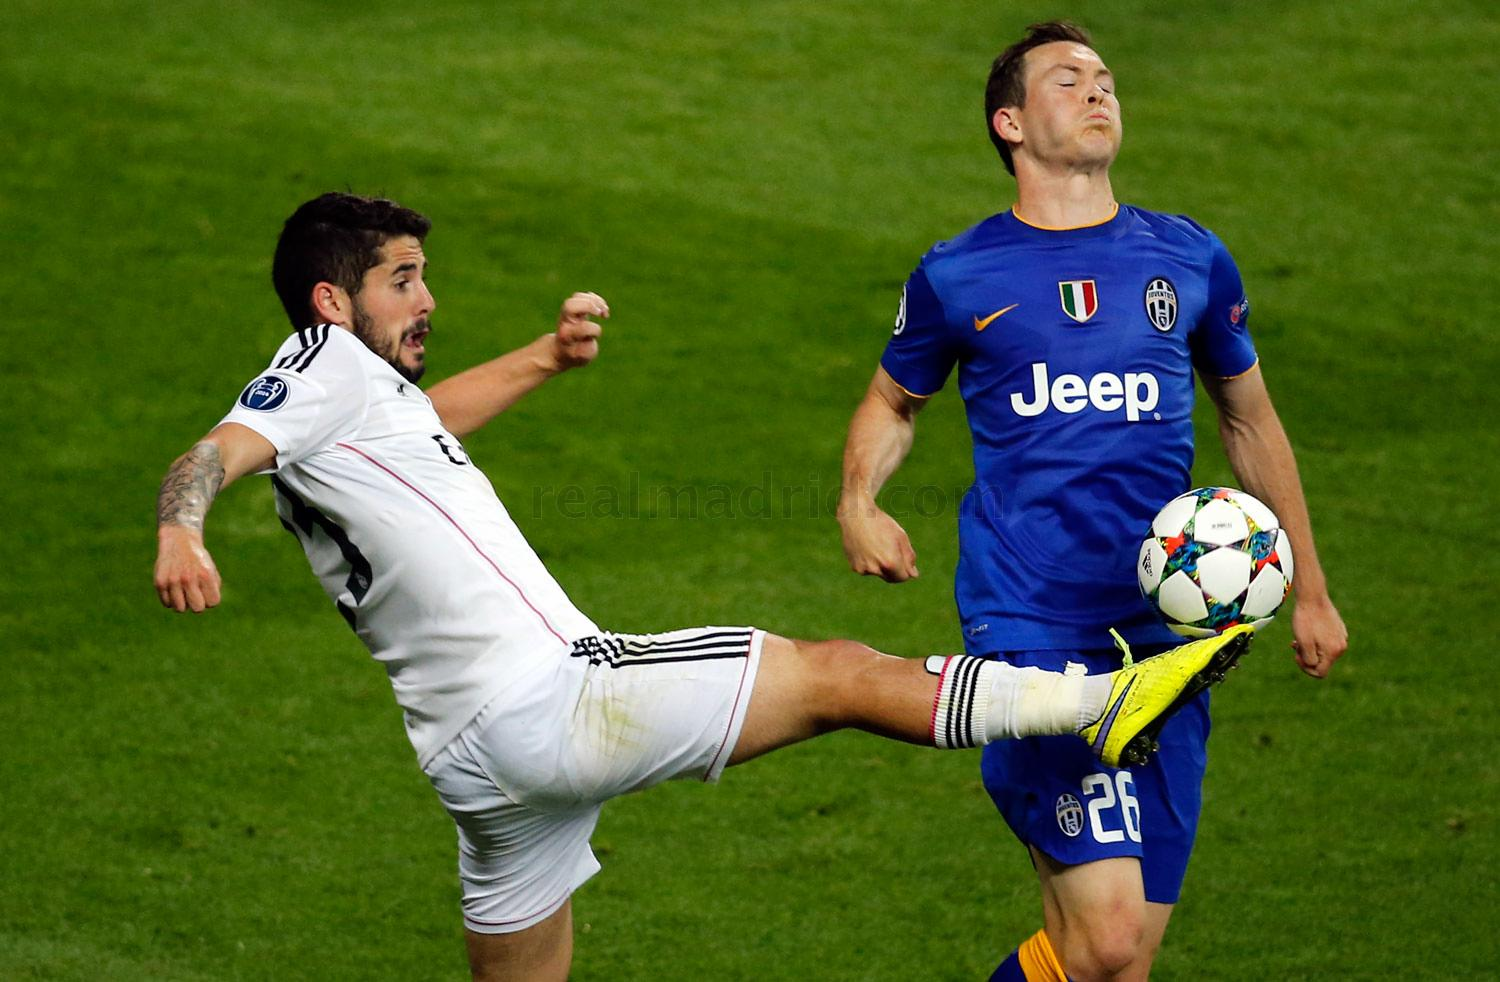 Real Madrid - Real Madrid - Juventus - 13-05-2015